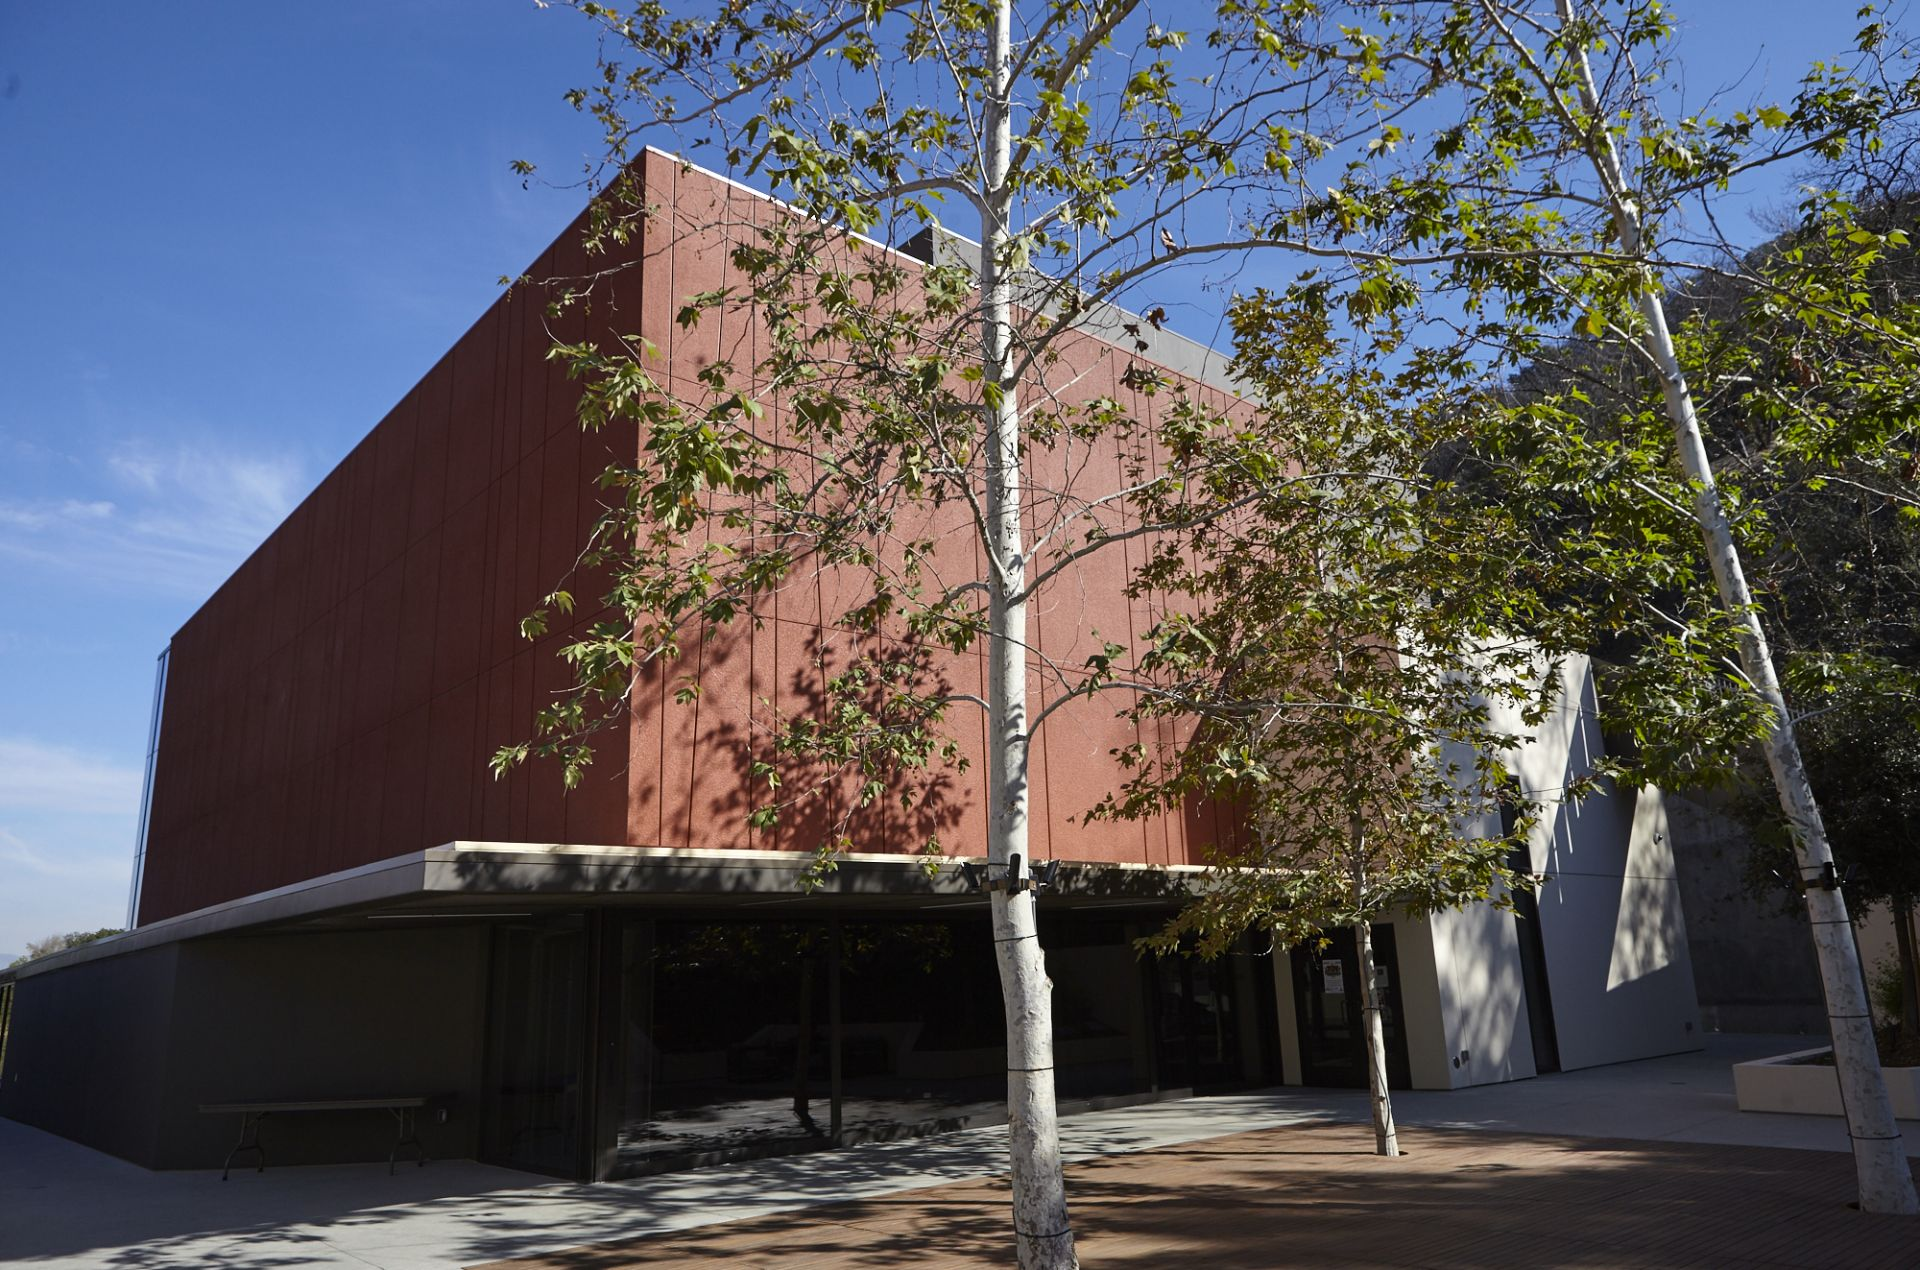 The Center for Community and the Arts was dedicated in fall 2016. It holds five classrooms, the English department offices, and a flexible theatre/assembly/event space.